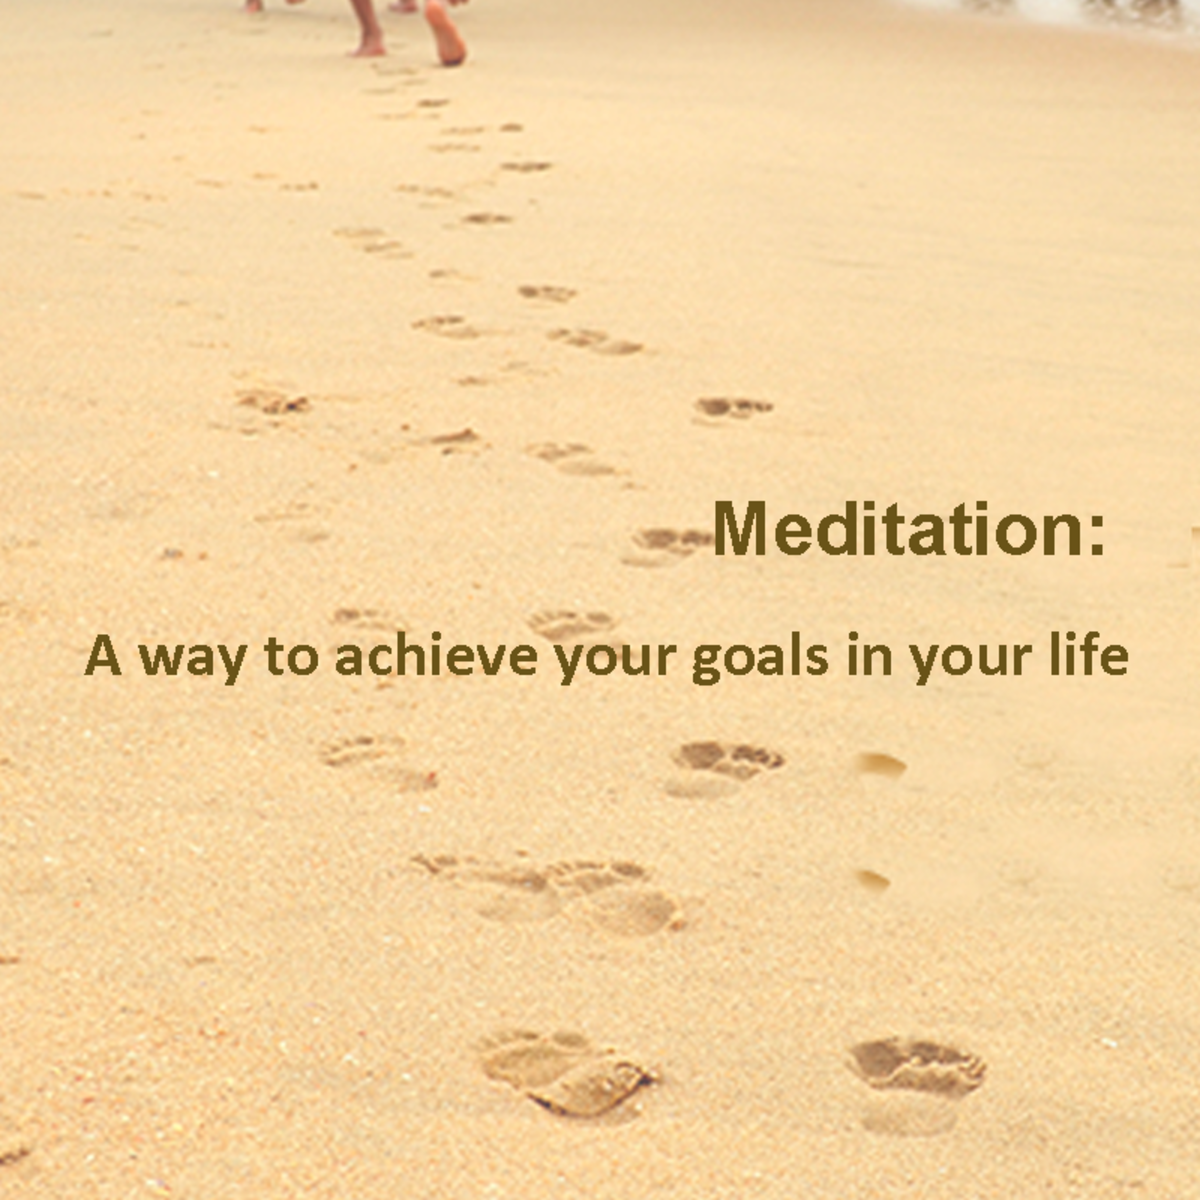 Meditation: A way to achieve your goals in your life Coupon